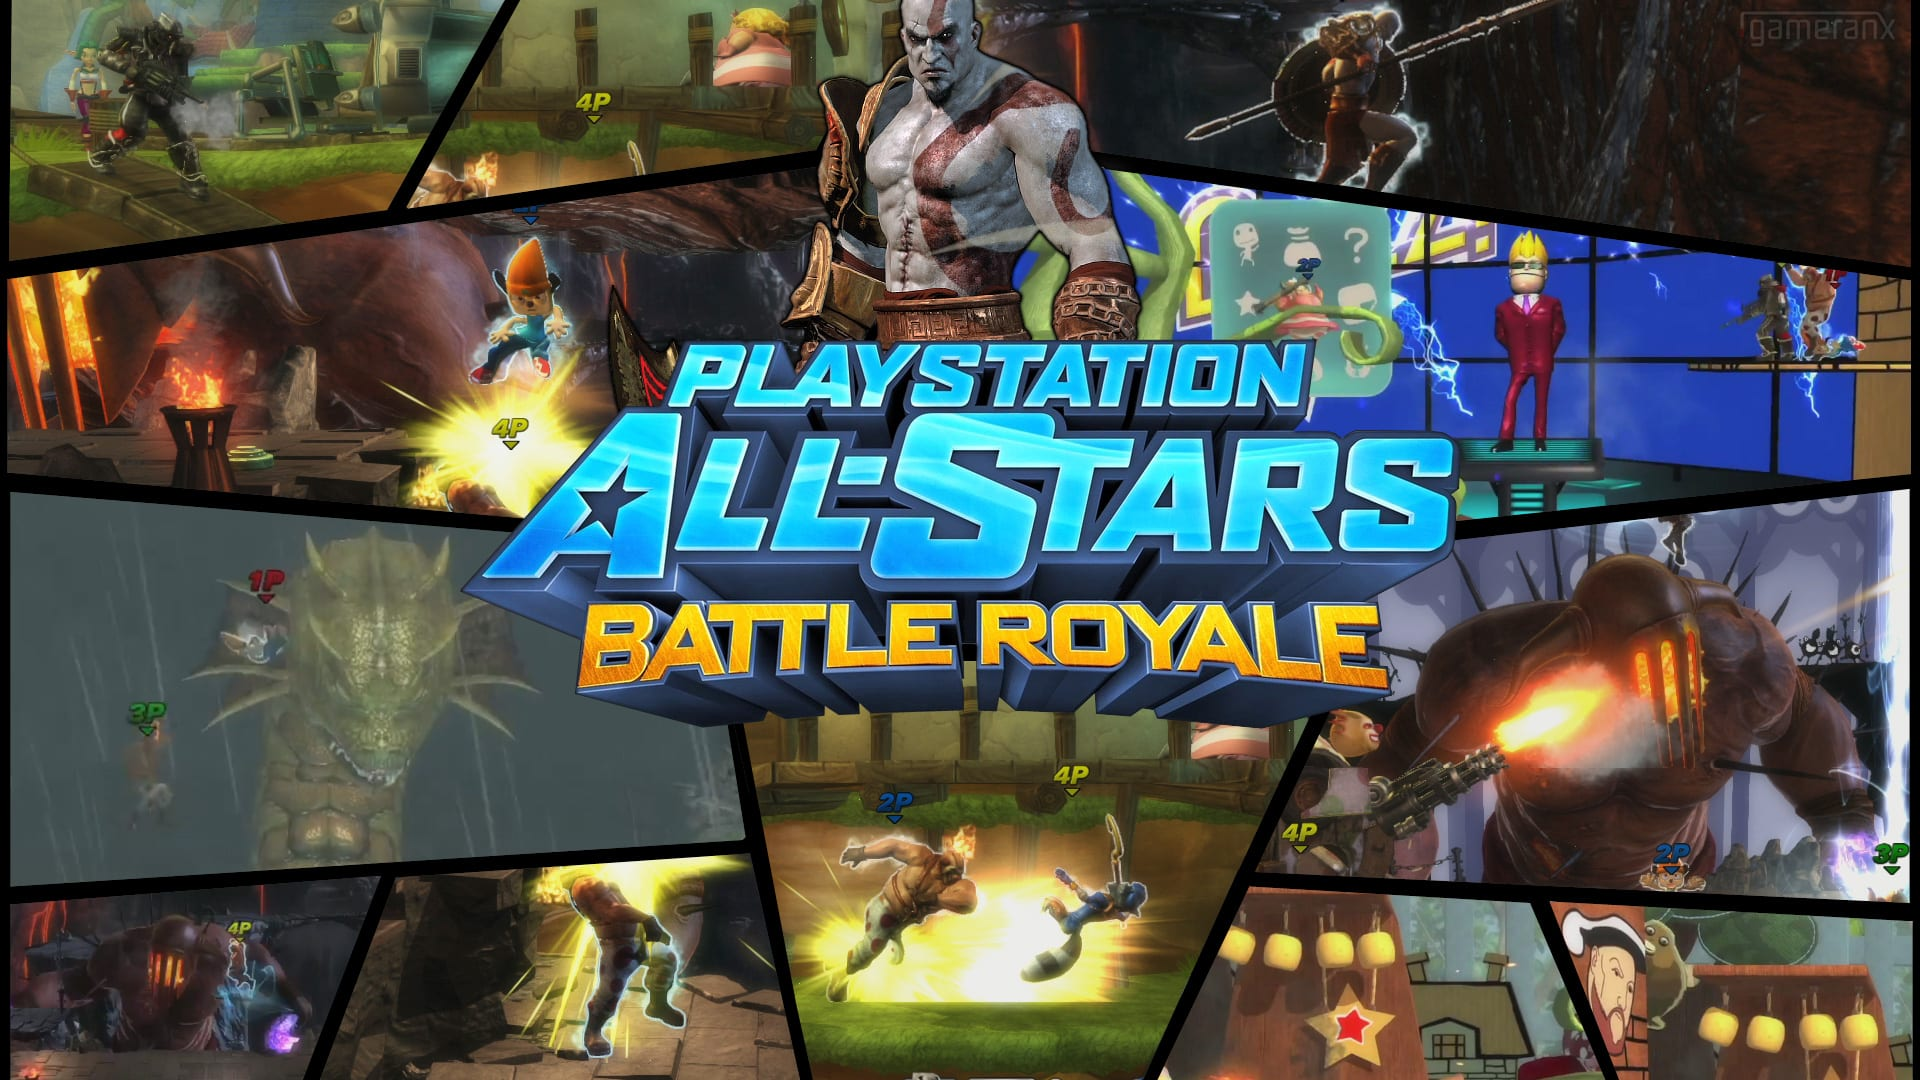 PlayStation All-Stars: Battle Royale are joined by Cole and Jak